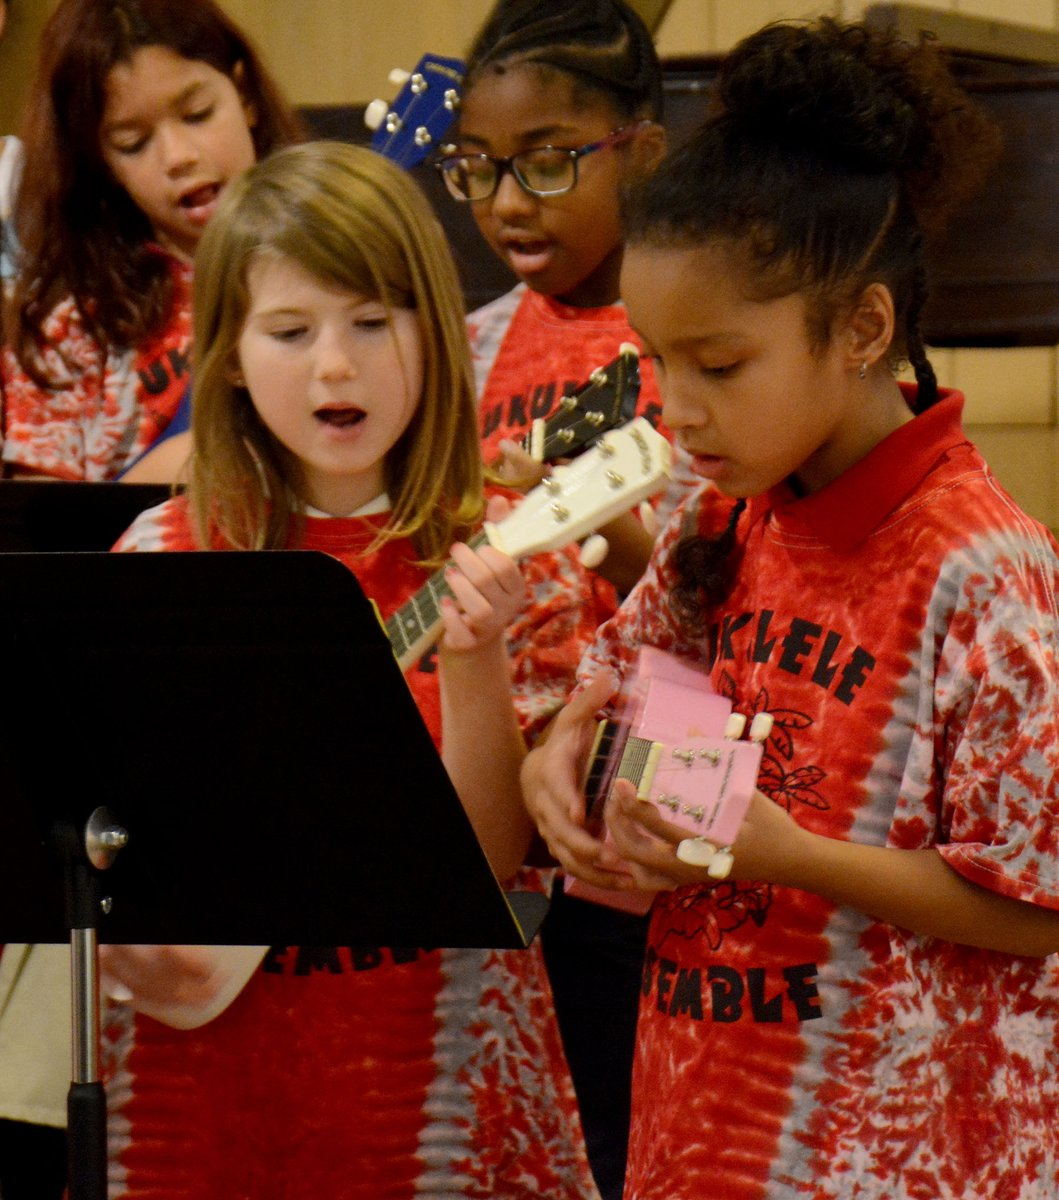 Heritage Ukuleles a hit at the Allen County Museum's Christmas Tree Festival today. #spartanmusic<br>http://pic.twitter.com/CTm9t51WoE